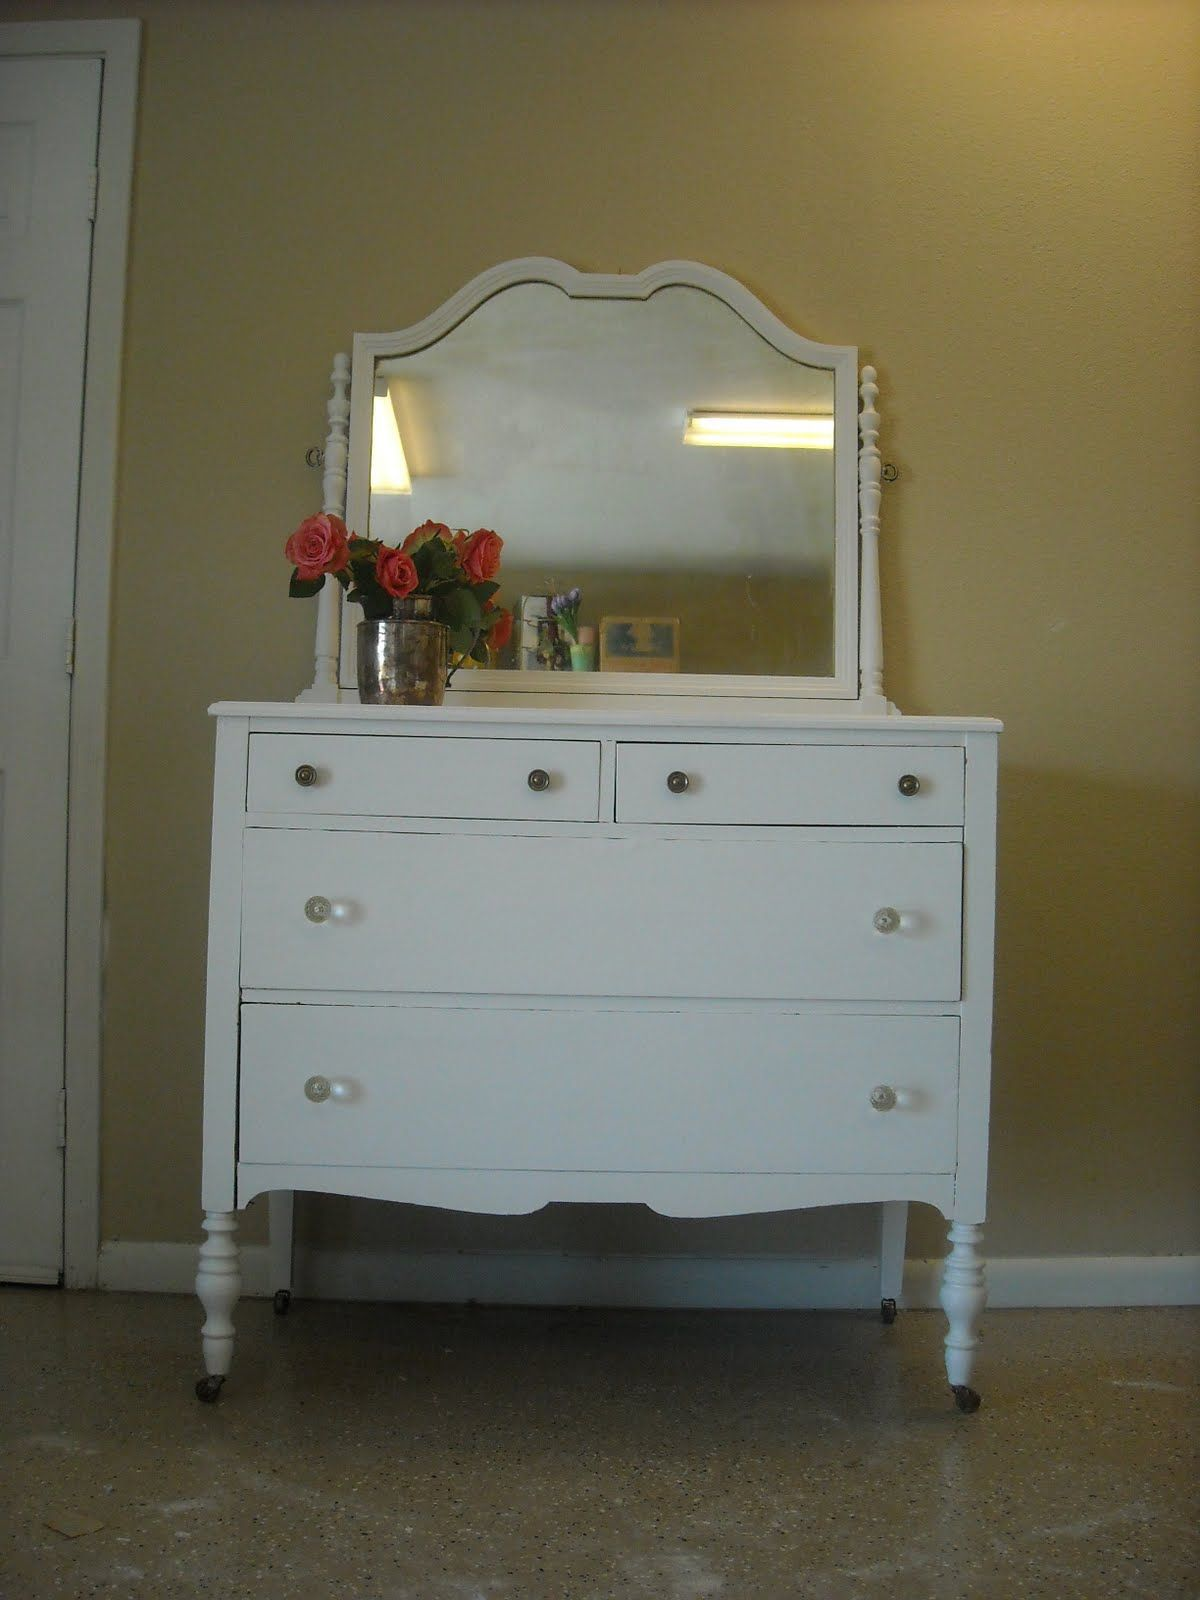 Elegant Antique White Dresser Mirror With Four Drawers